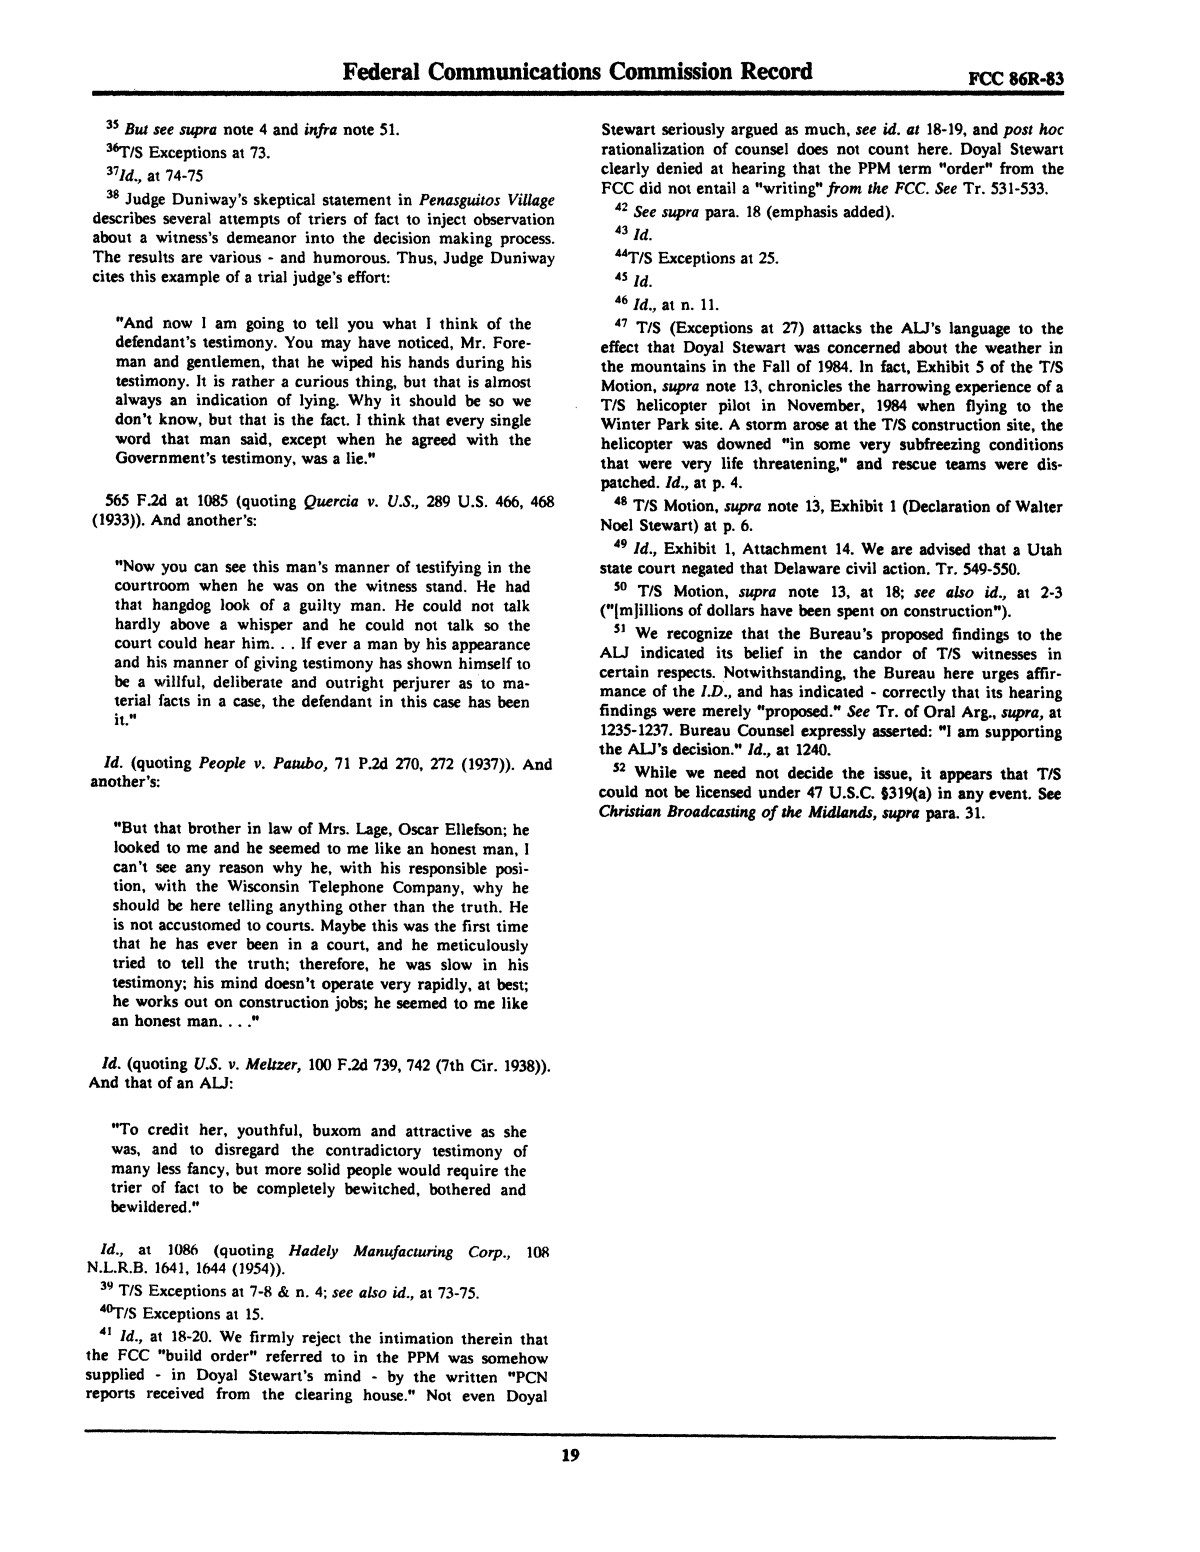 FCC Record, Volume 2, No. 1, Pages 1 to 409, January 5 - January 16, 1987                                                                                                      19